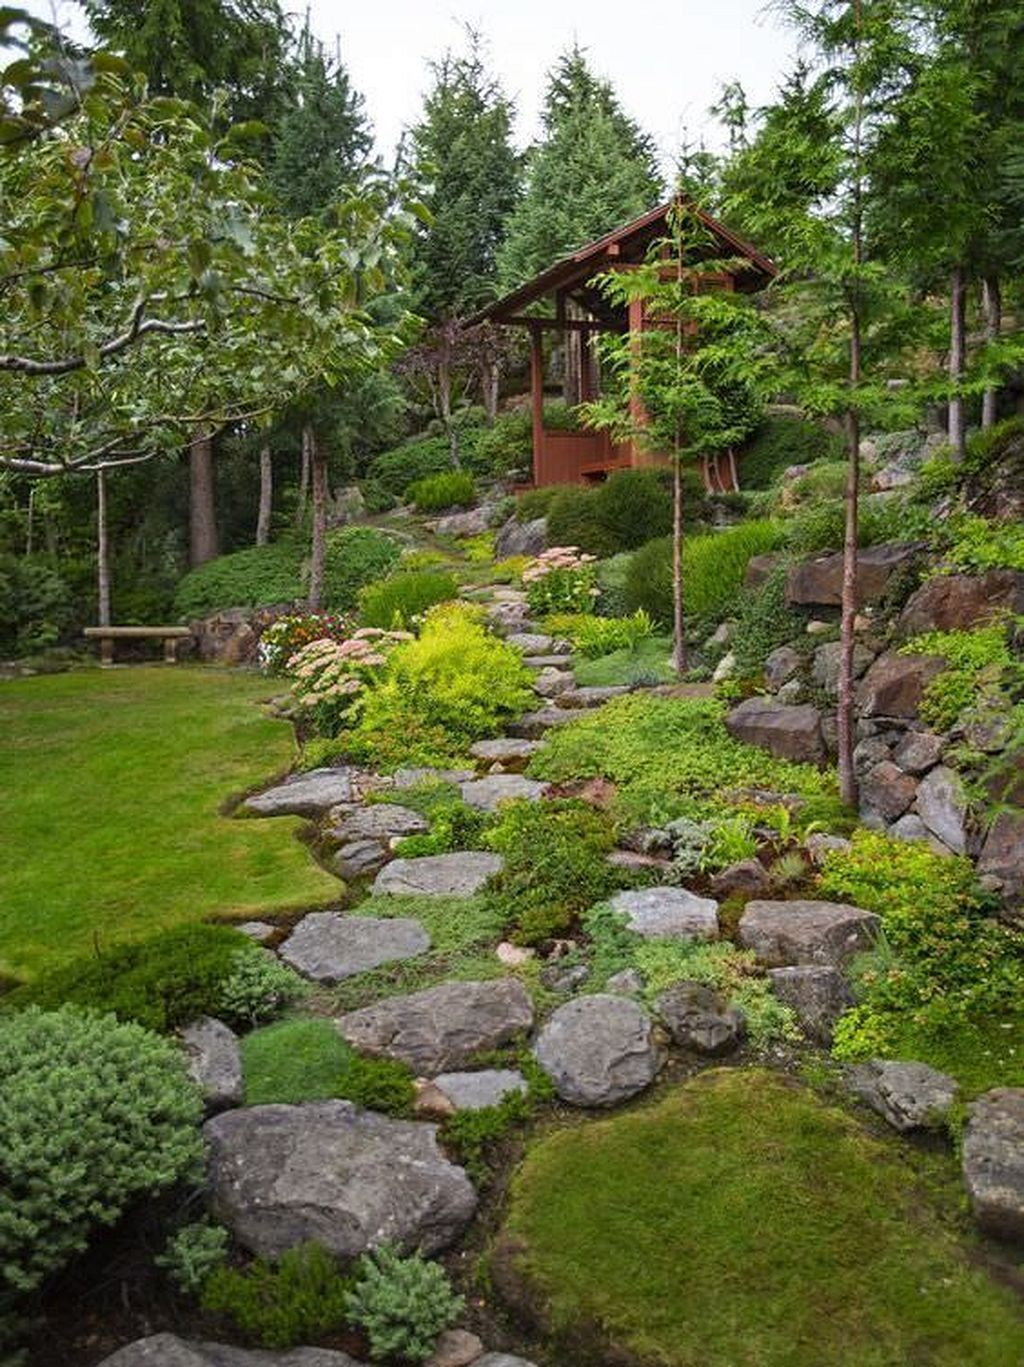 rock garden design ideas vary in sizes, types of green and flowering